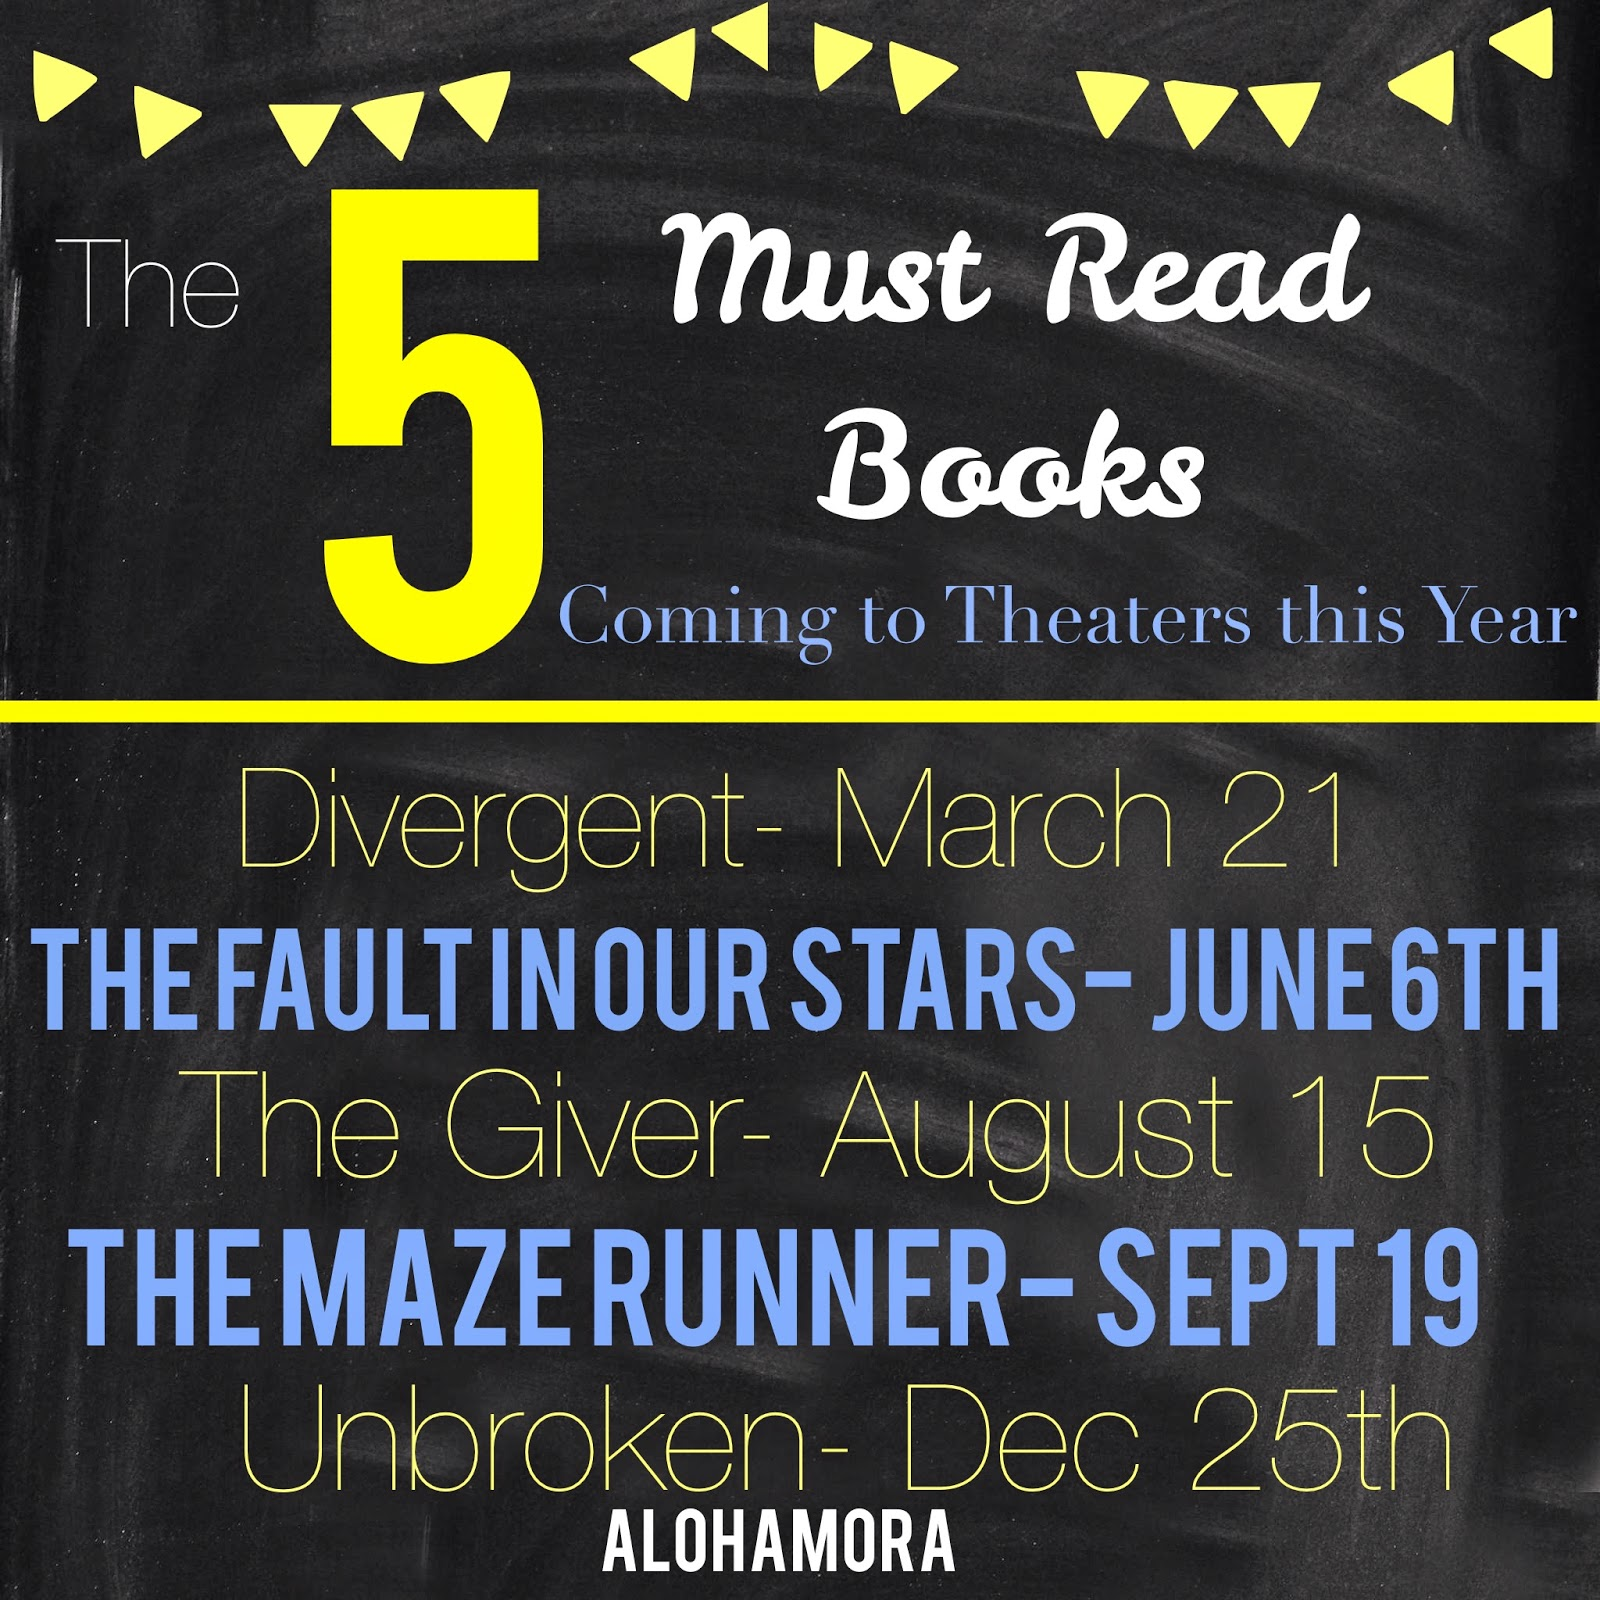 The 5 must read books that are coming to theaters in 2014.  These are the best books of the bunch and the movies have a lot to live up to.  Alohamora Open a Book http://alohamoraopenabook.blogspot.com/